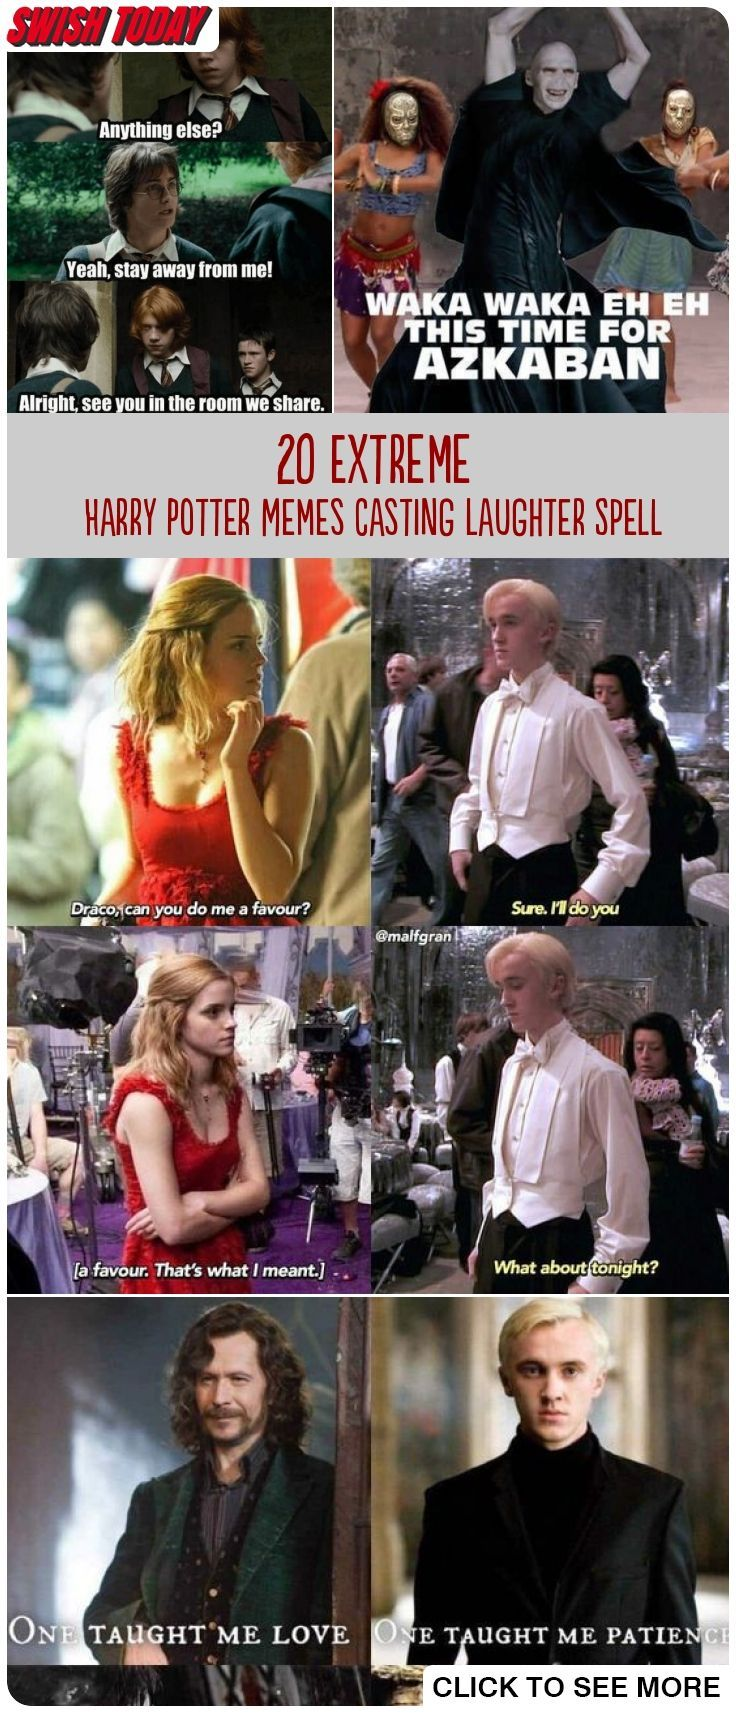 20 Extremely Funny Harry Potter Memes Casting Laughter Spell Harrypotter Potterfun Memes Harry Potter Memes Hilarious Harry Potter Funny Harry Potter Memes